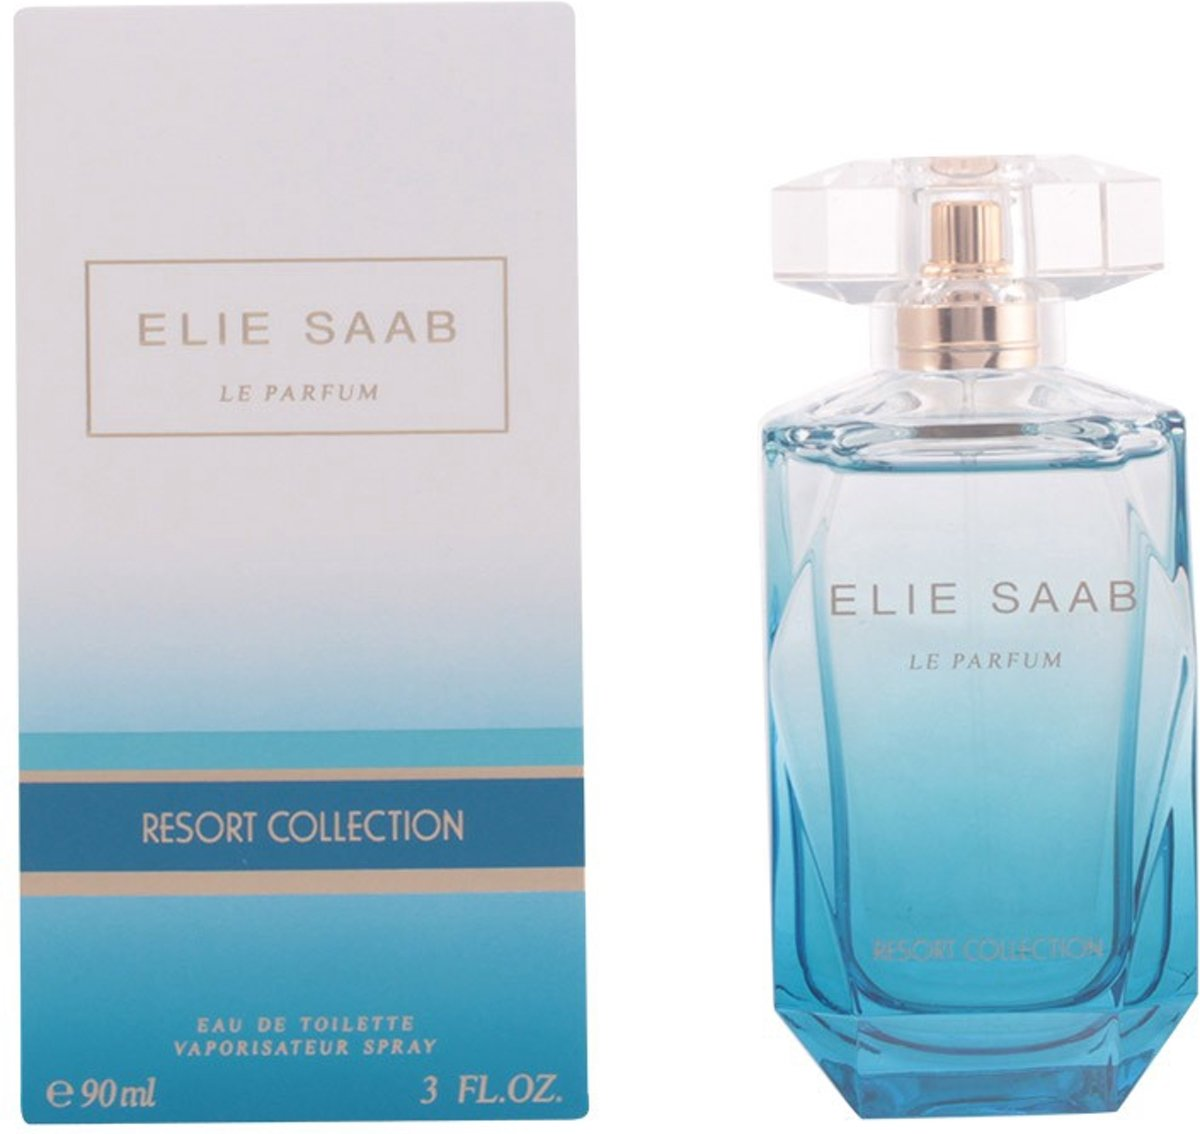 Elie Saab Le Parfum Resort Collection EDT 90 ml